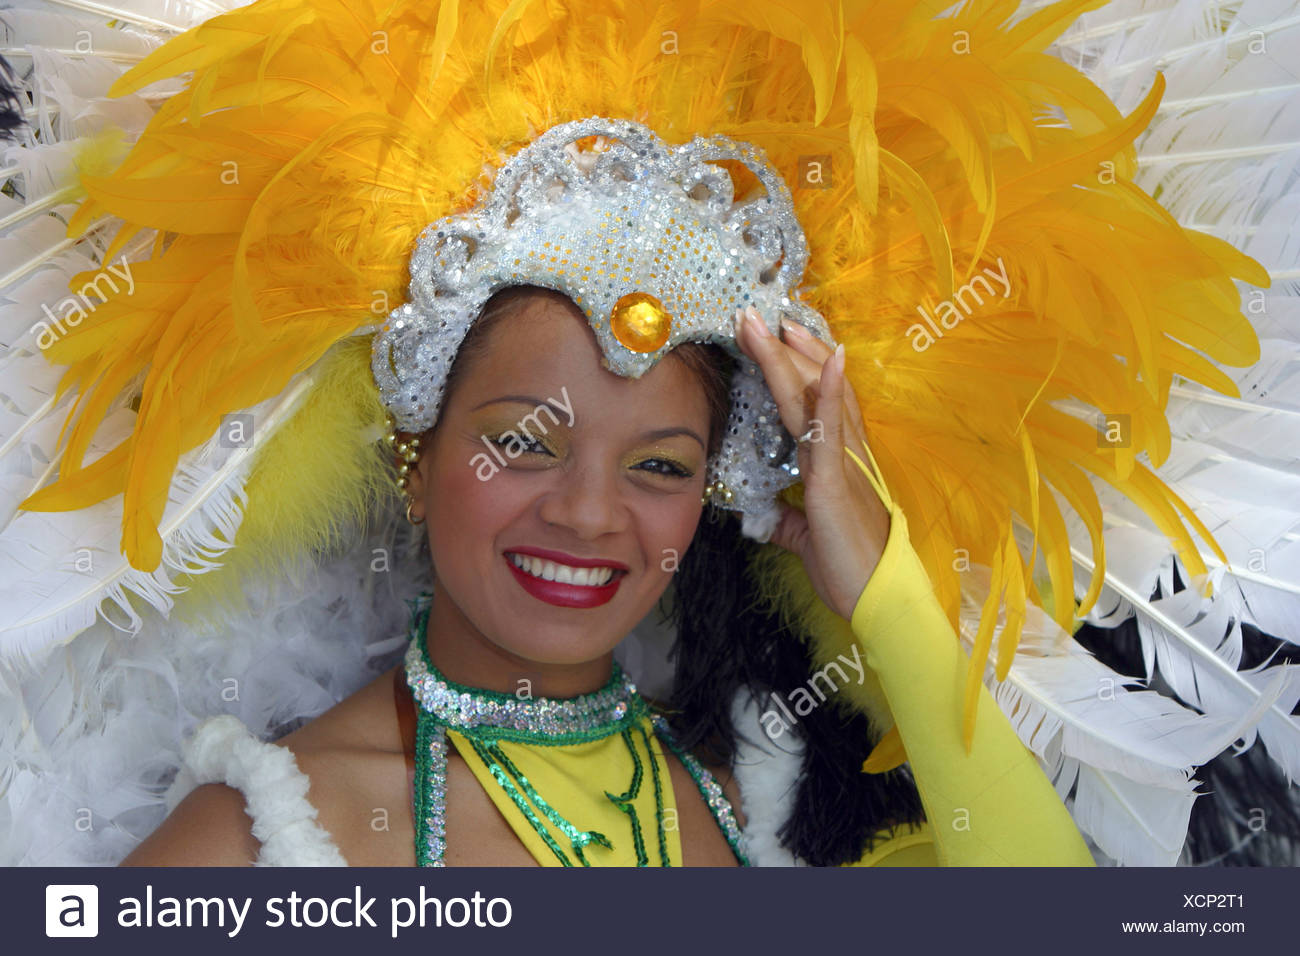 pretty woman with feathered headdress on national holiday, Dominican Republic, La Romana, Bayahibe - Stock Image